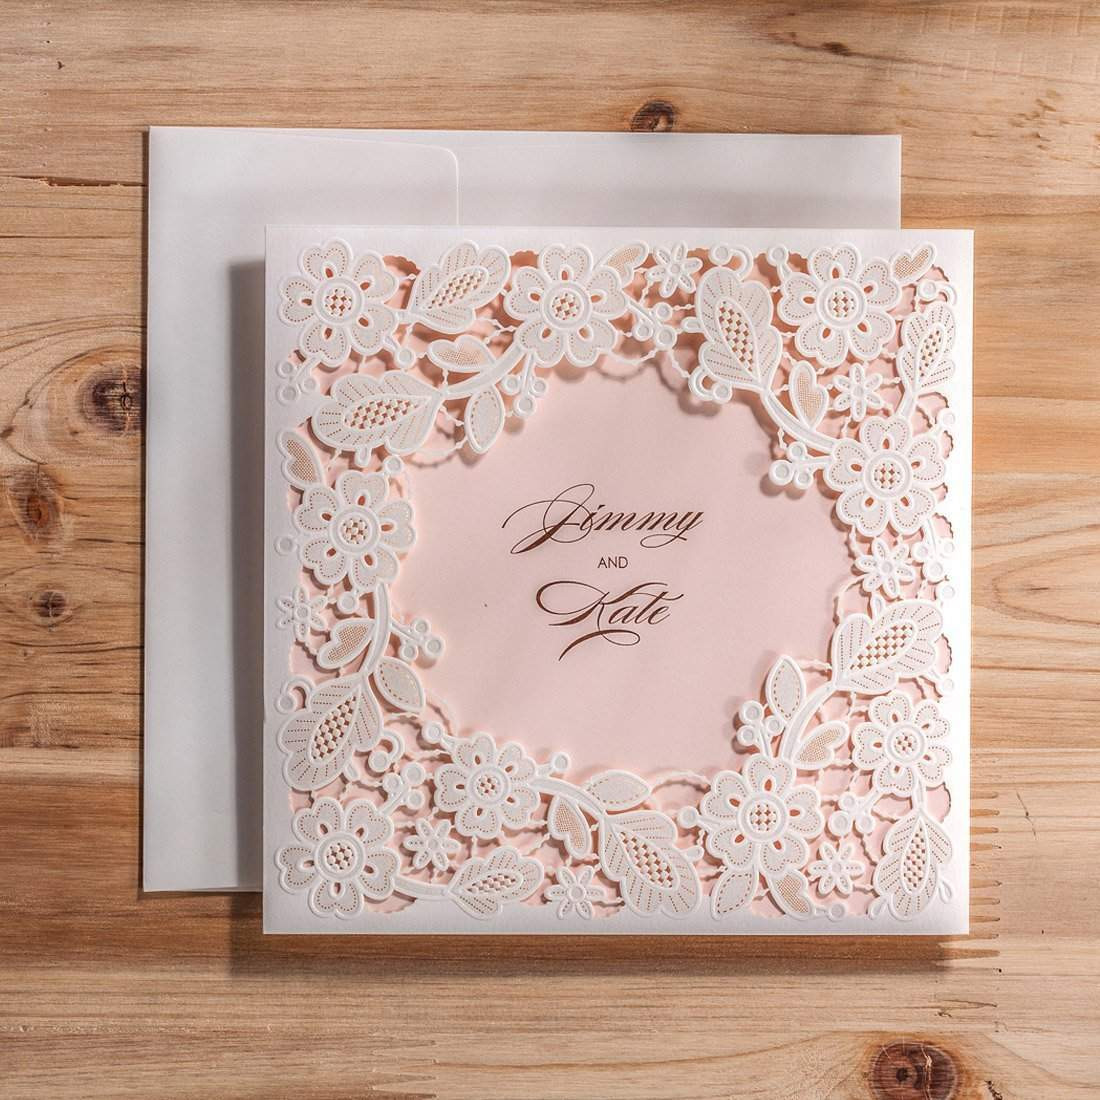 Best ideas about Wedding Invite DIY . Save or Pin Top 10 Best Cheap DIY Wedding Invitations Now.